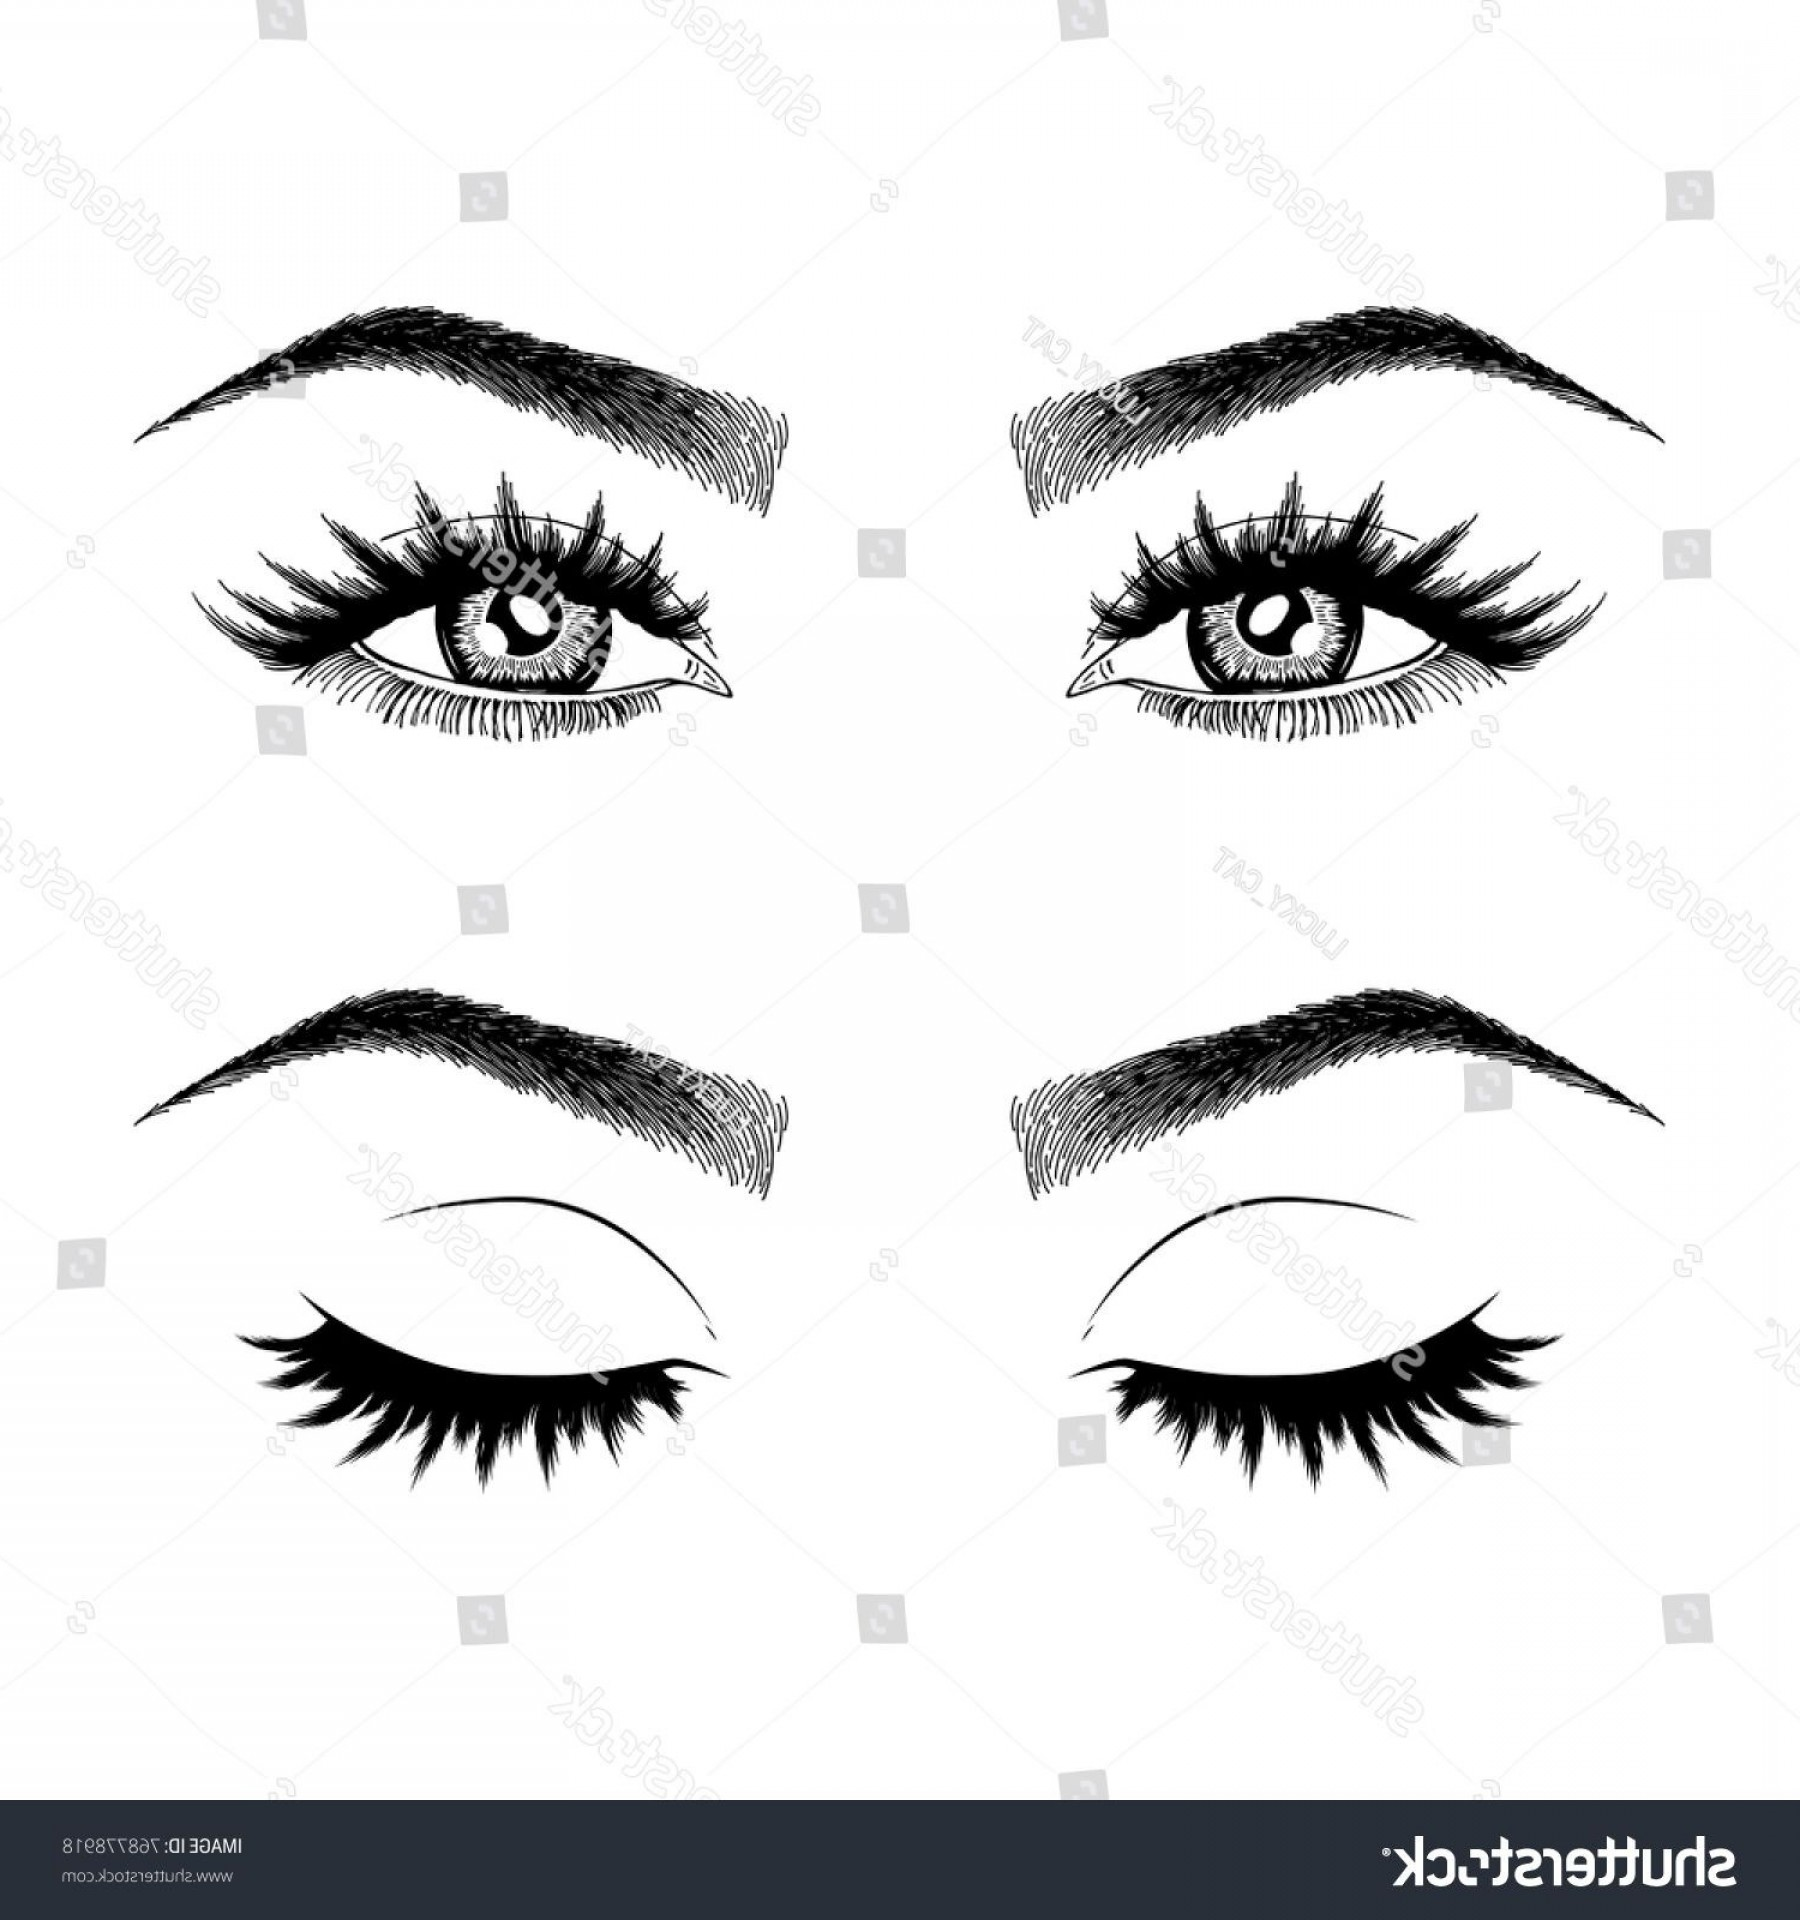 Top Eye Lashes Vector: Illustration Womans Eyes Eyelashes Eyebrows Makeup Stock Vector